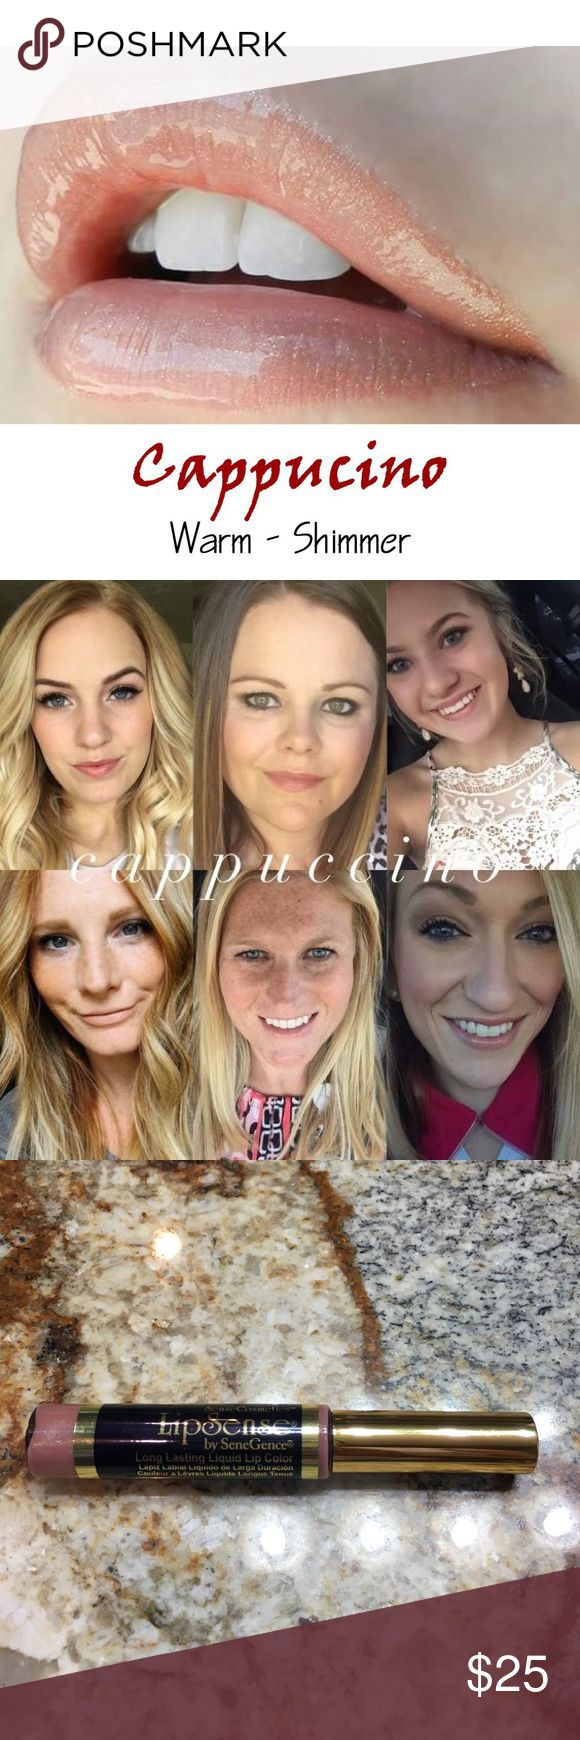 Lipsense CAPPUCCINO 18 Hour Lipcolor In Stock!!! Brand new, sealed! Cappuccino is a gorgeous and sophisticated nude Pink.   The premier product of Senegence, LipSense lasts all day – up to 18 hours. It is water-proof, kiss-proof, smudge-proof, and completely budge-proof. LipSense comes in a variety of captivating colors and can be layered to produce your own custom look.  Must be worn with a Lipsense gloss. Brand new, sealed!  COMMENT BELOW WITH YOUR EMAIL TO GET DISCOUNT INFORMATION, I…